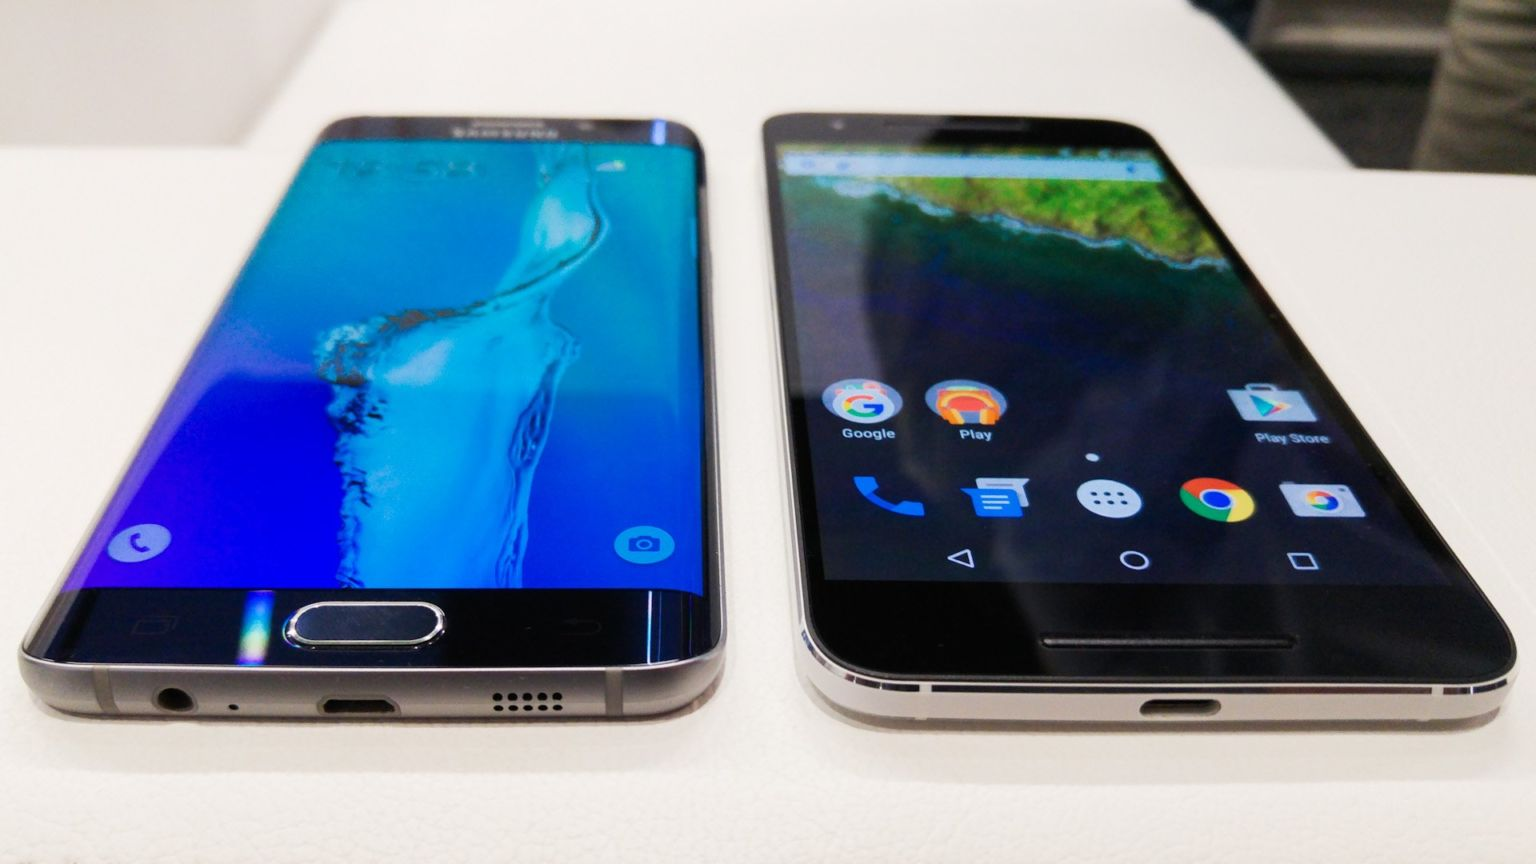 Nexus 6P vs Samsung Galaxy S7 Edge